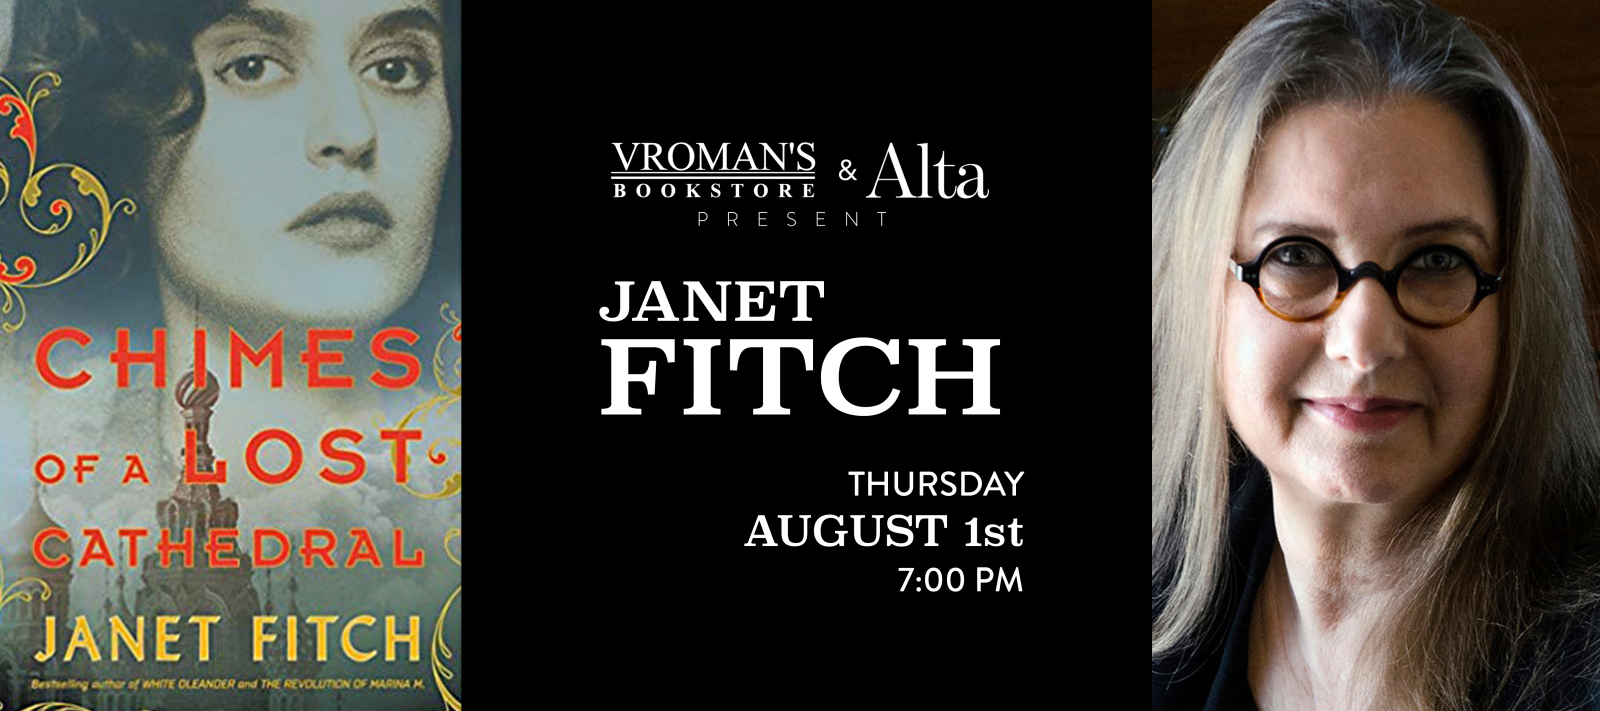 Janet Fitch book signing Thursday August 1st at 7pm